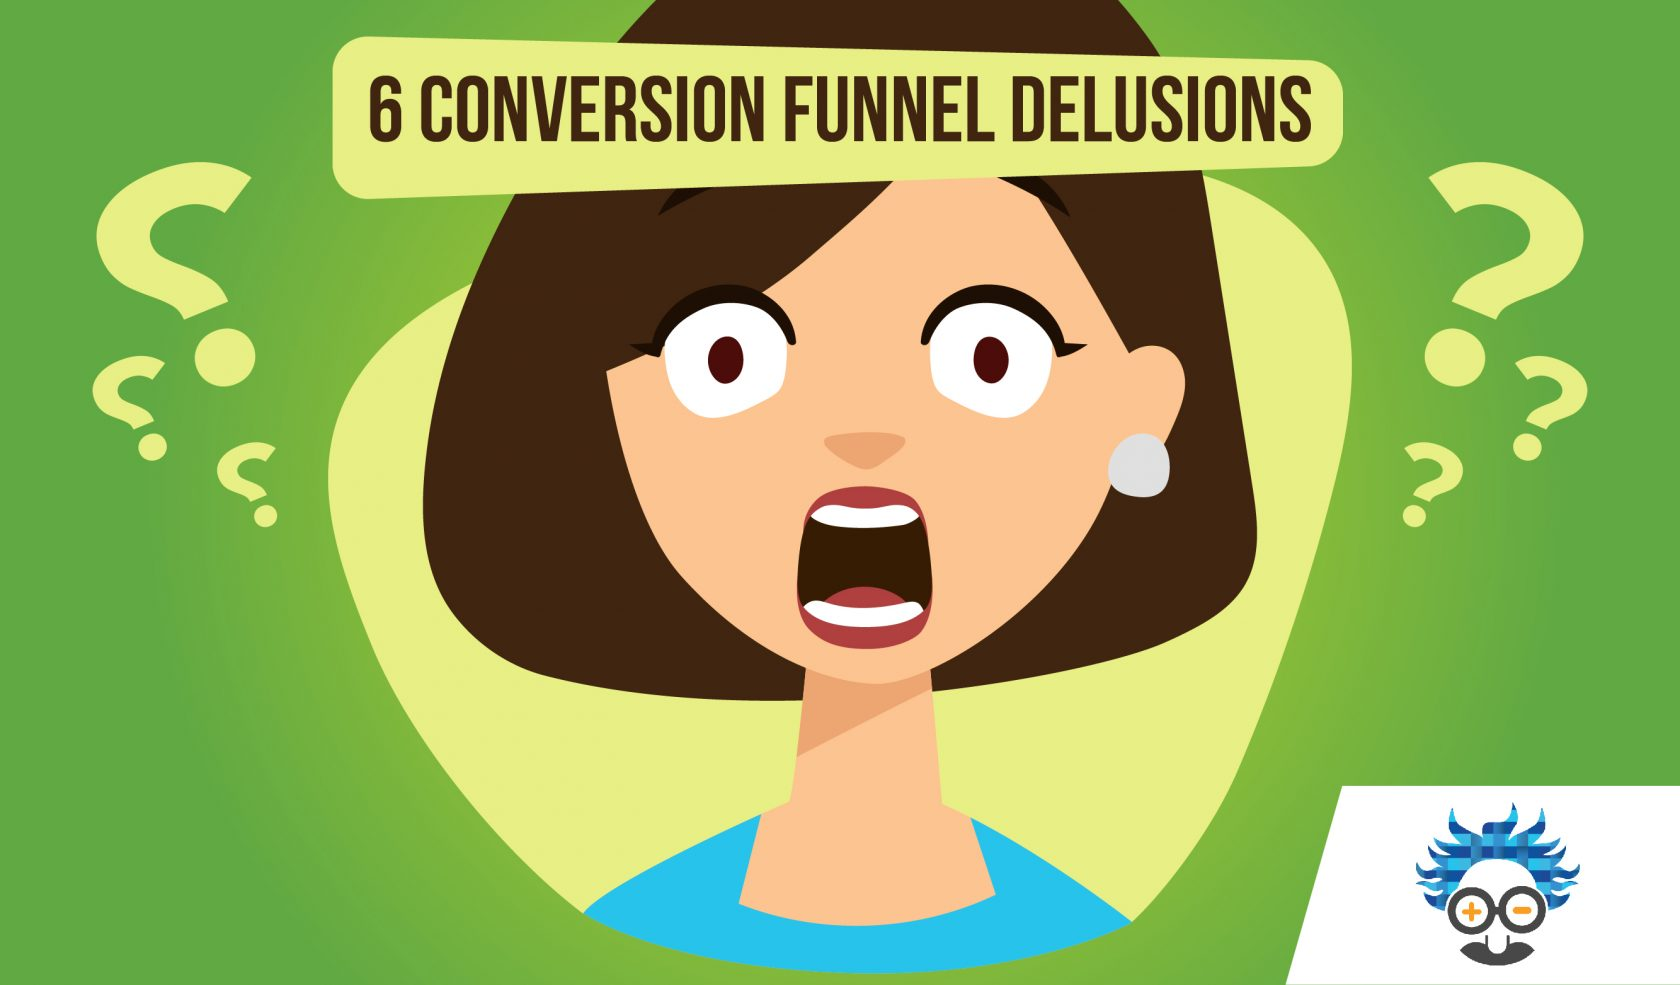 conversion funnel delusions